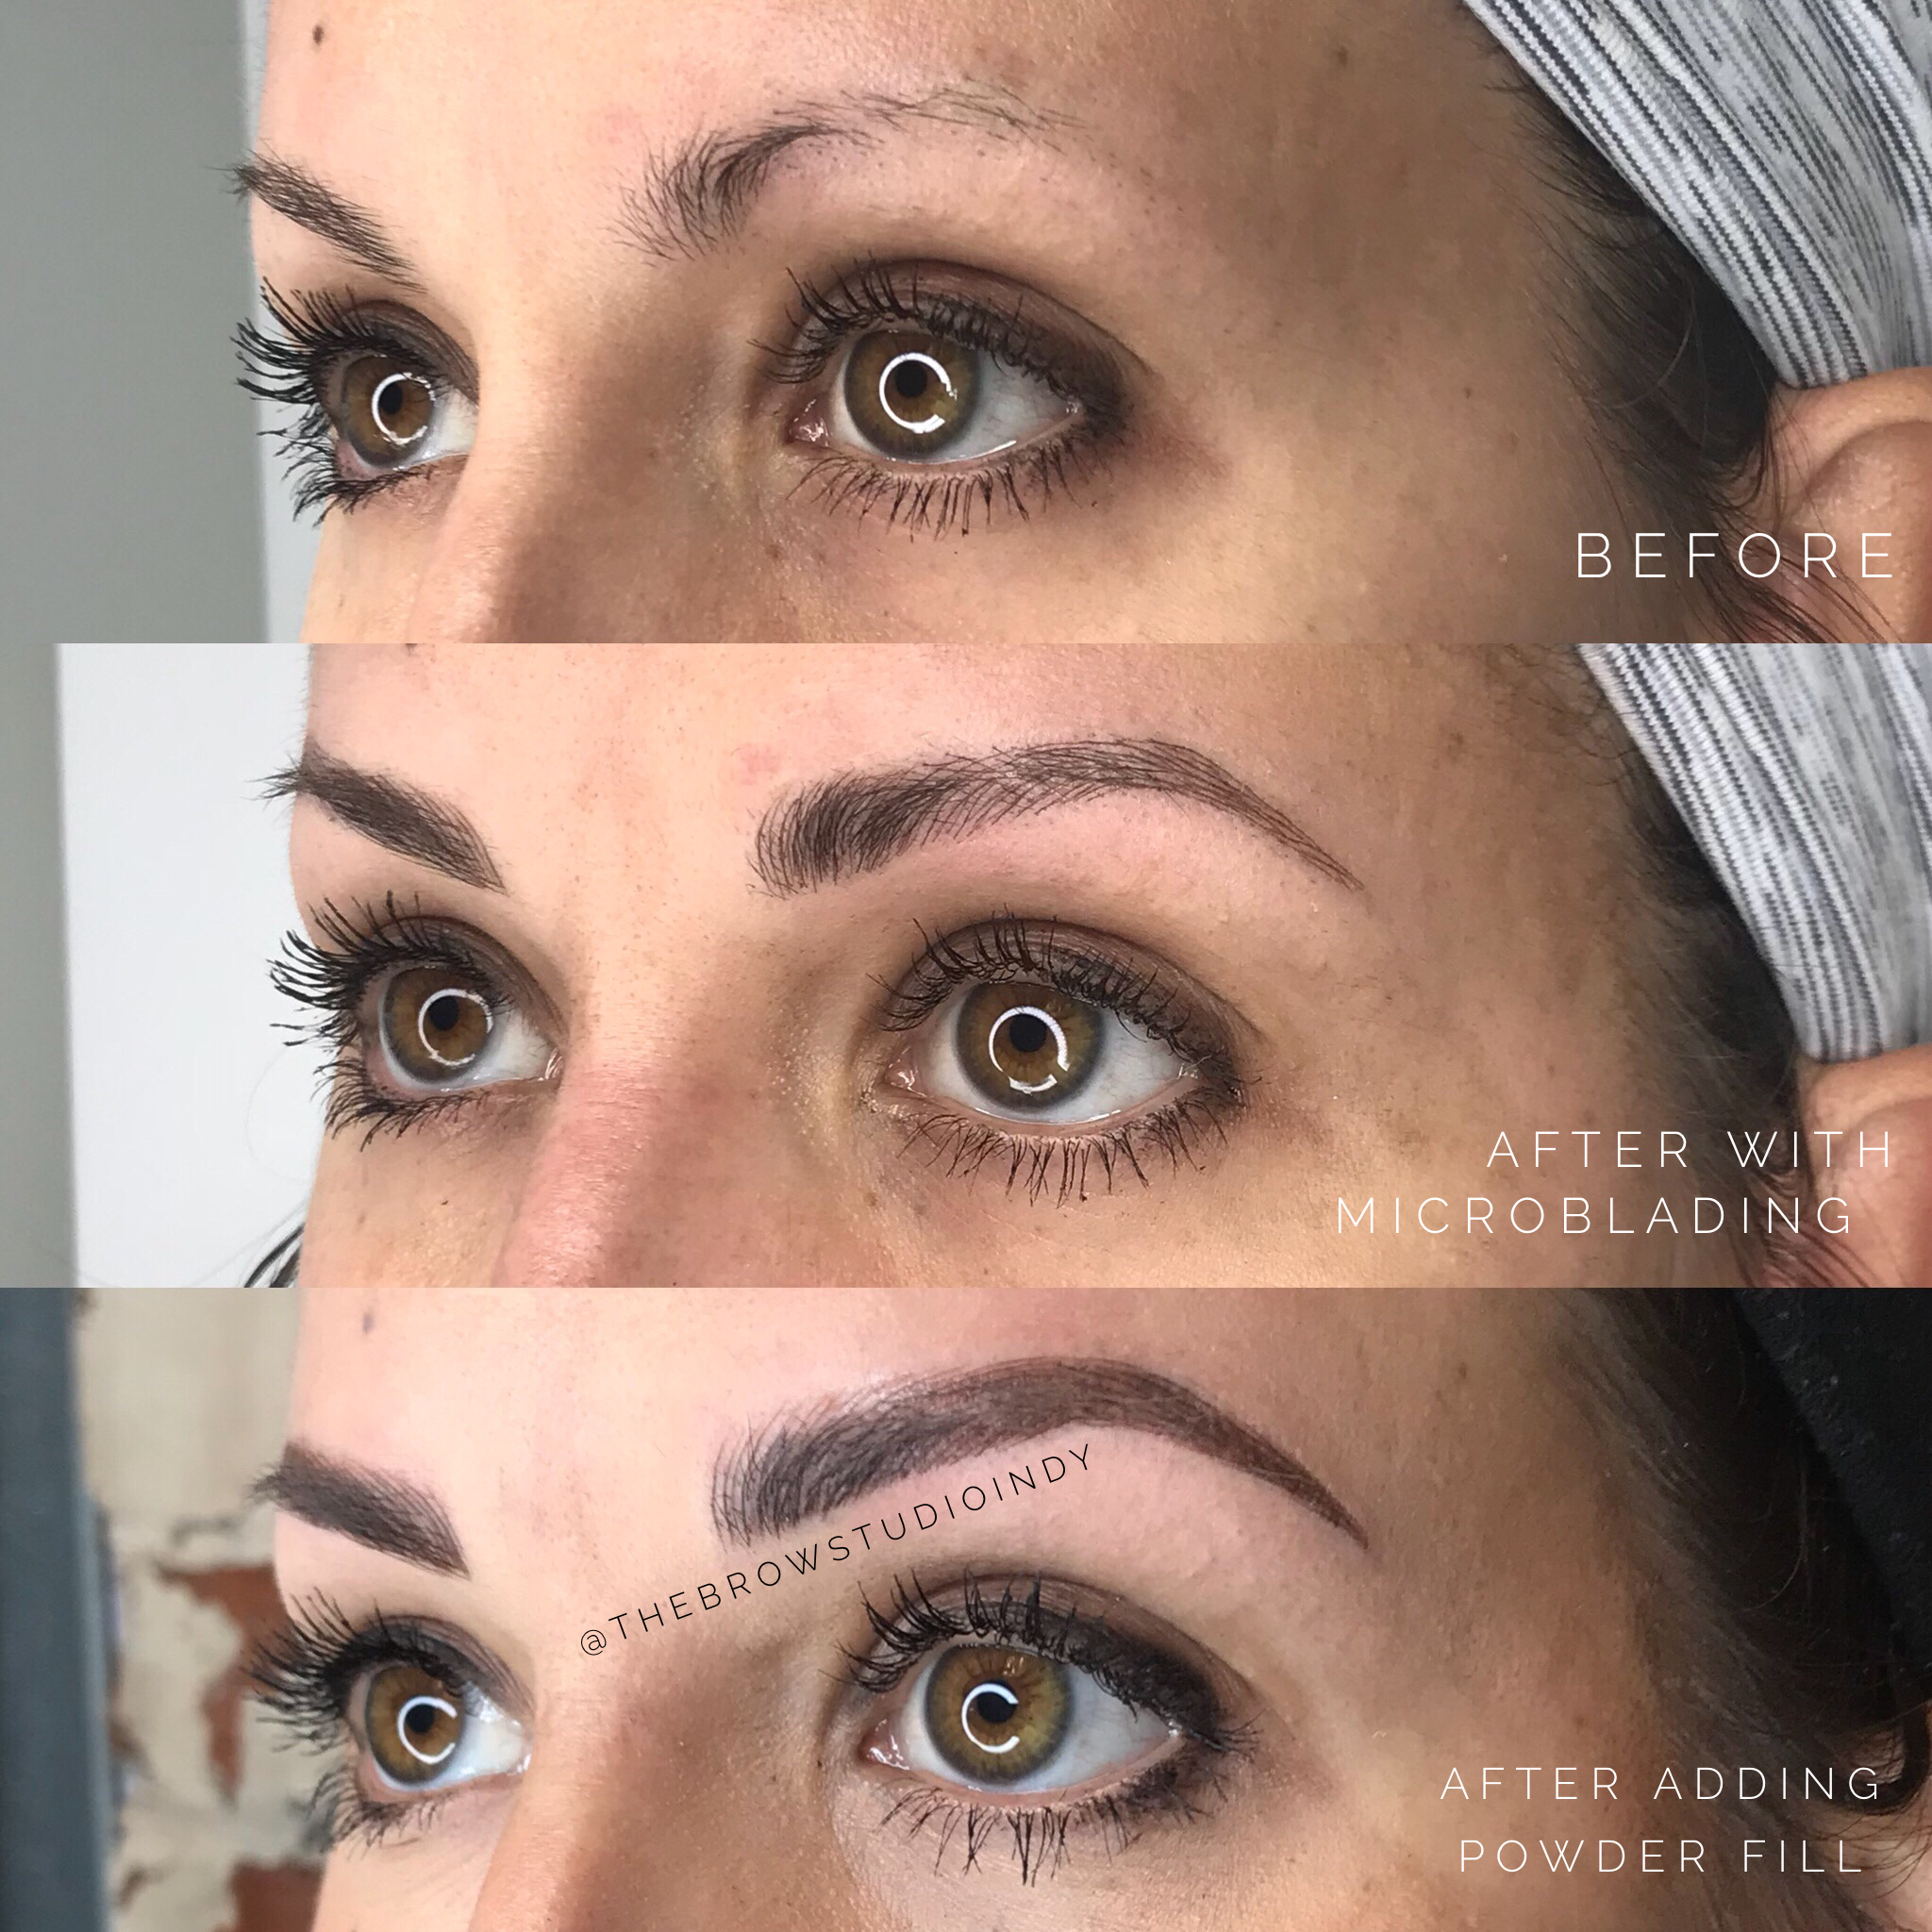 From Microblading To A Combination Brow Before And After